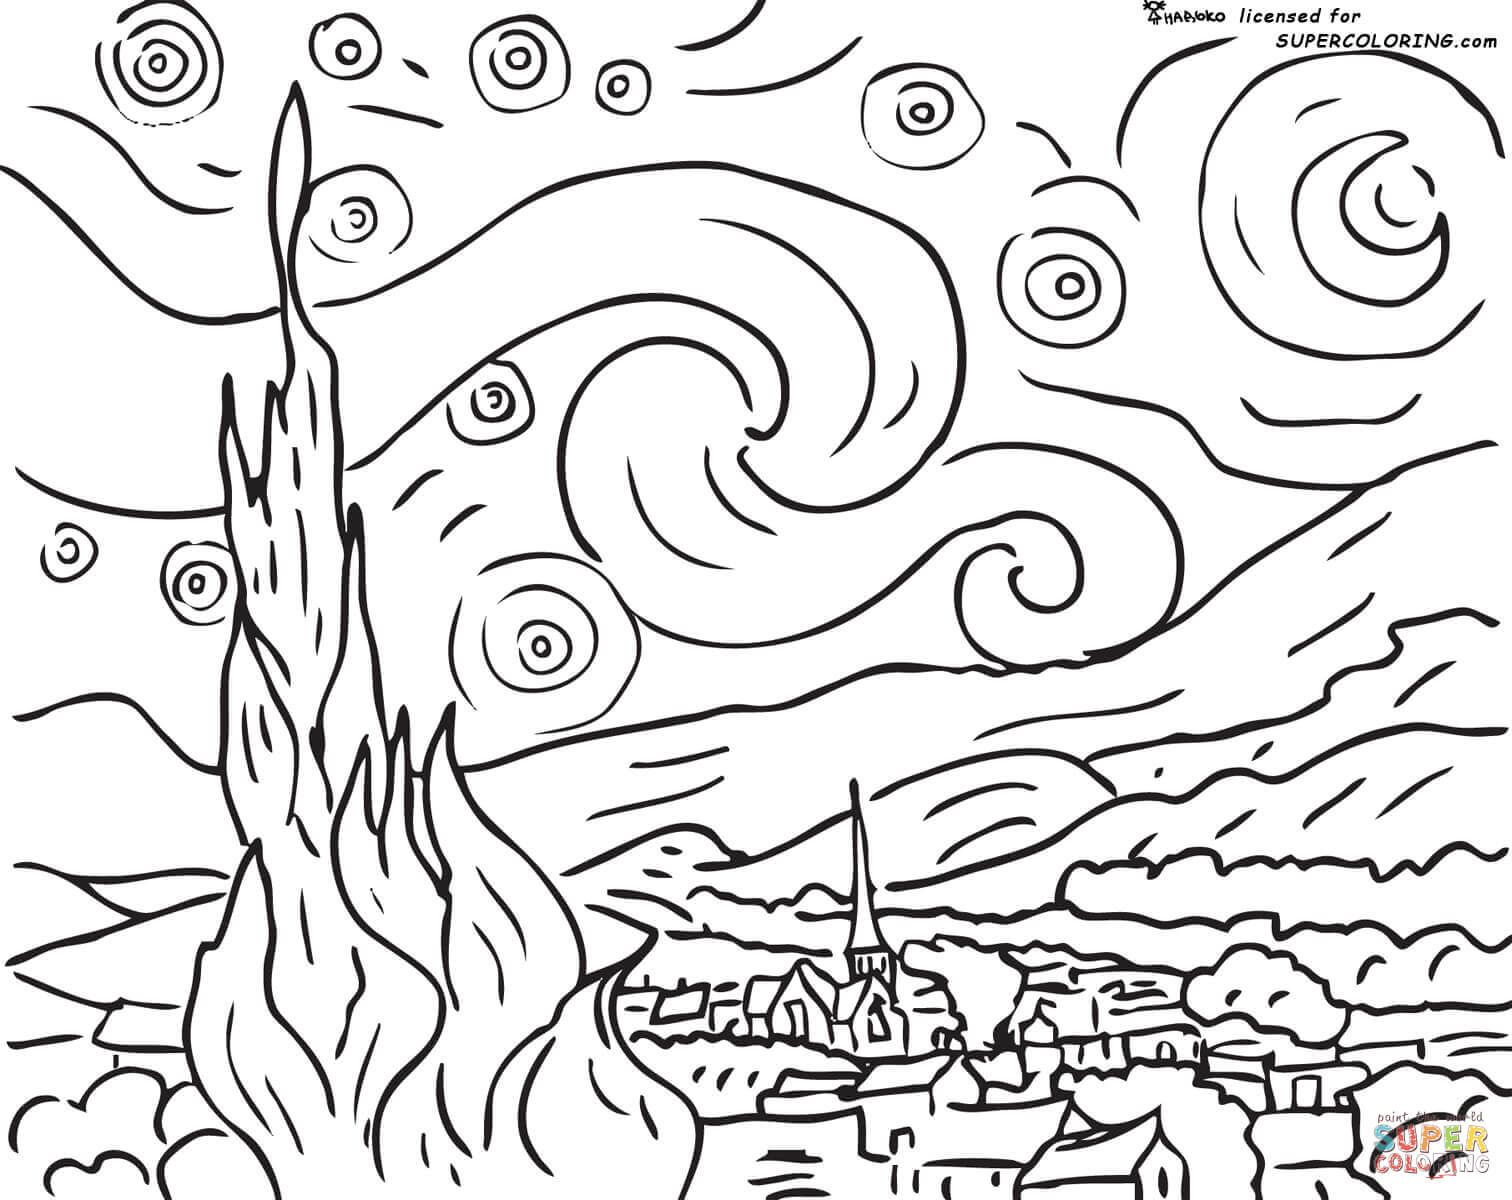 Starry Night By Vincent Van Gogh Coloring Page From Vincent Van Gogh Category Select From 26983 Printable Van Gogh Coloring Starry Night Van Gogh Van Gogh Art